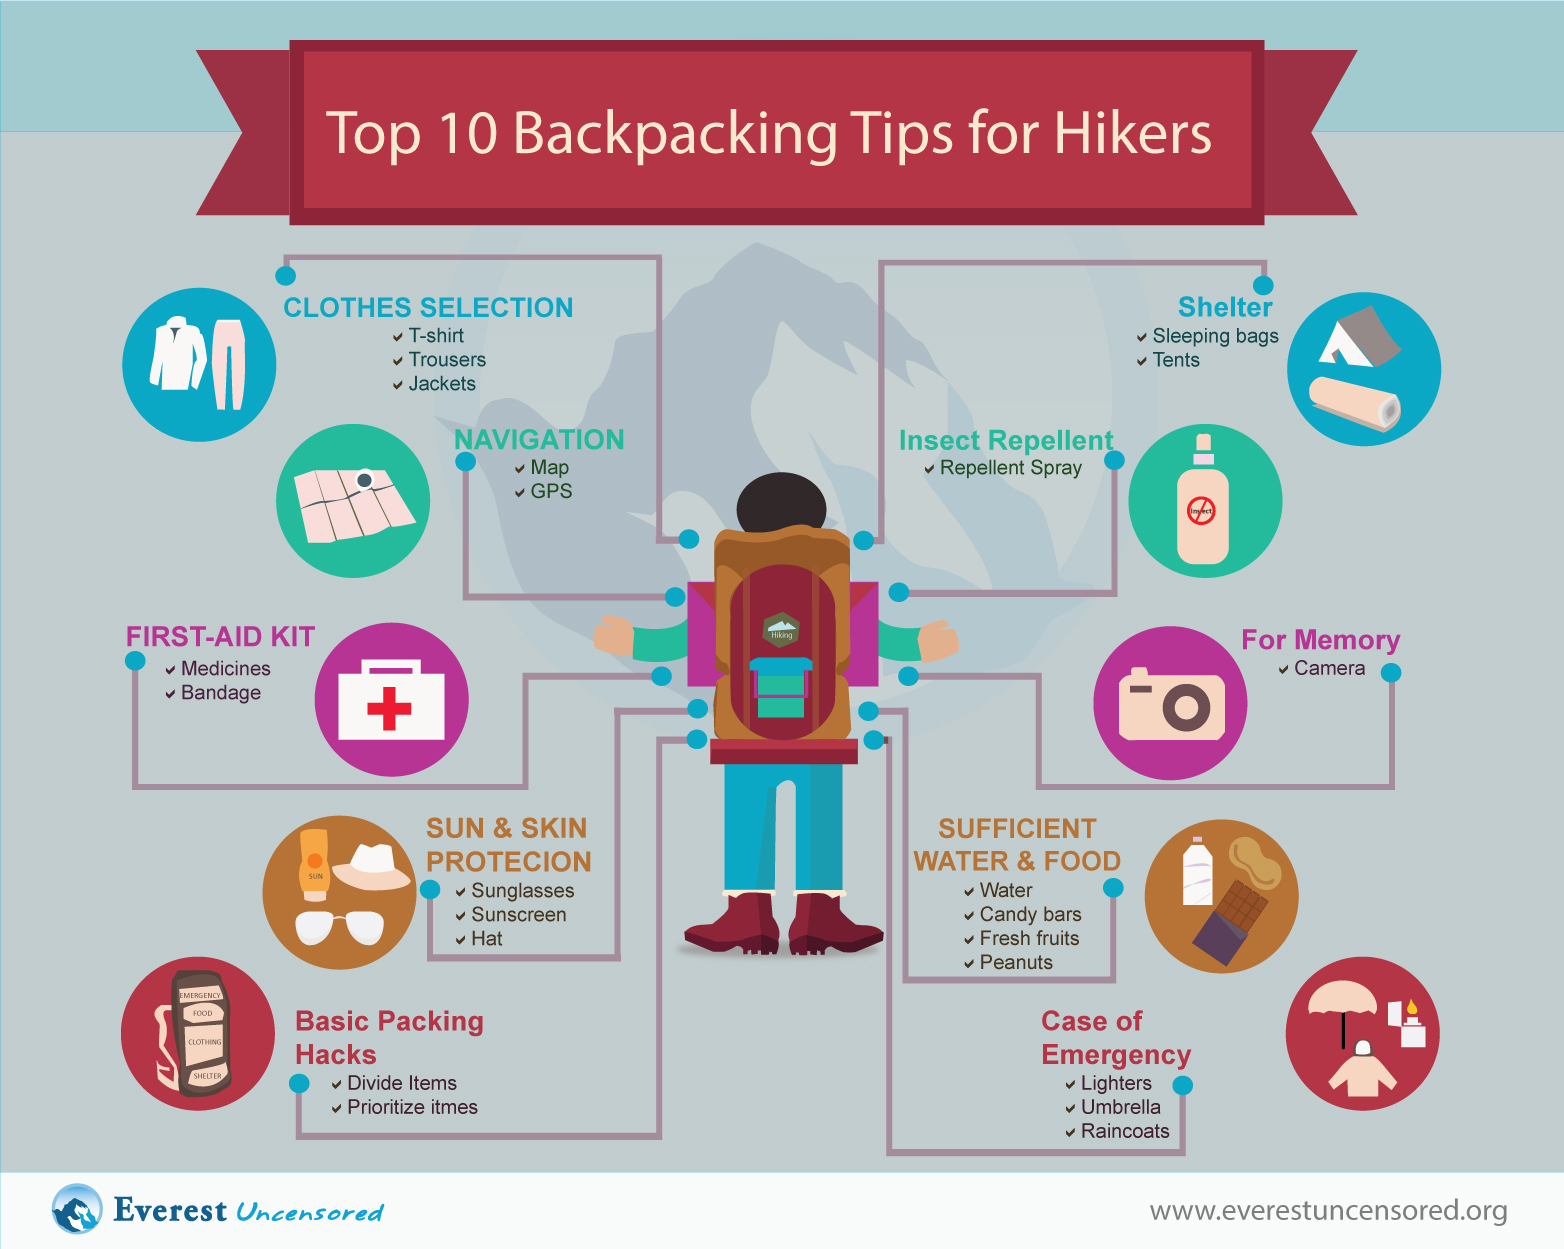 Top 10 Bagpacking Tips for Hikers